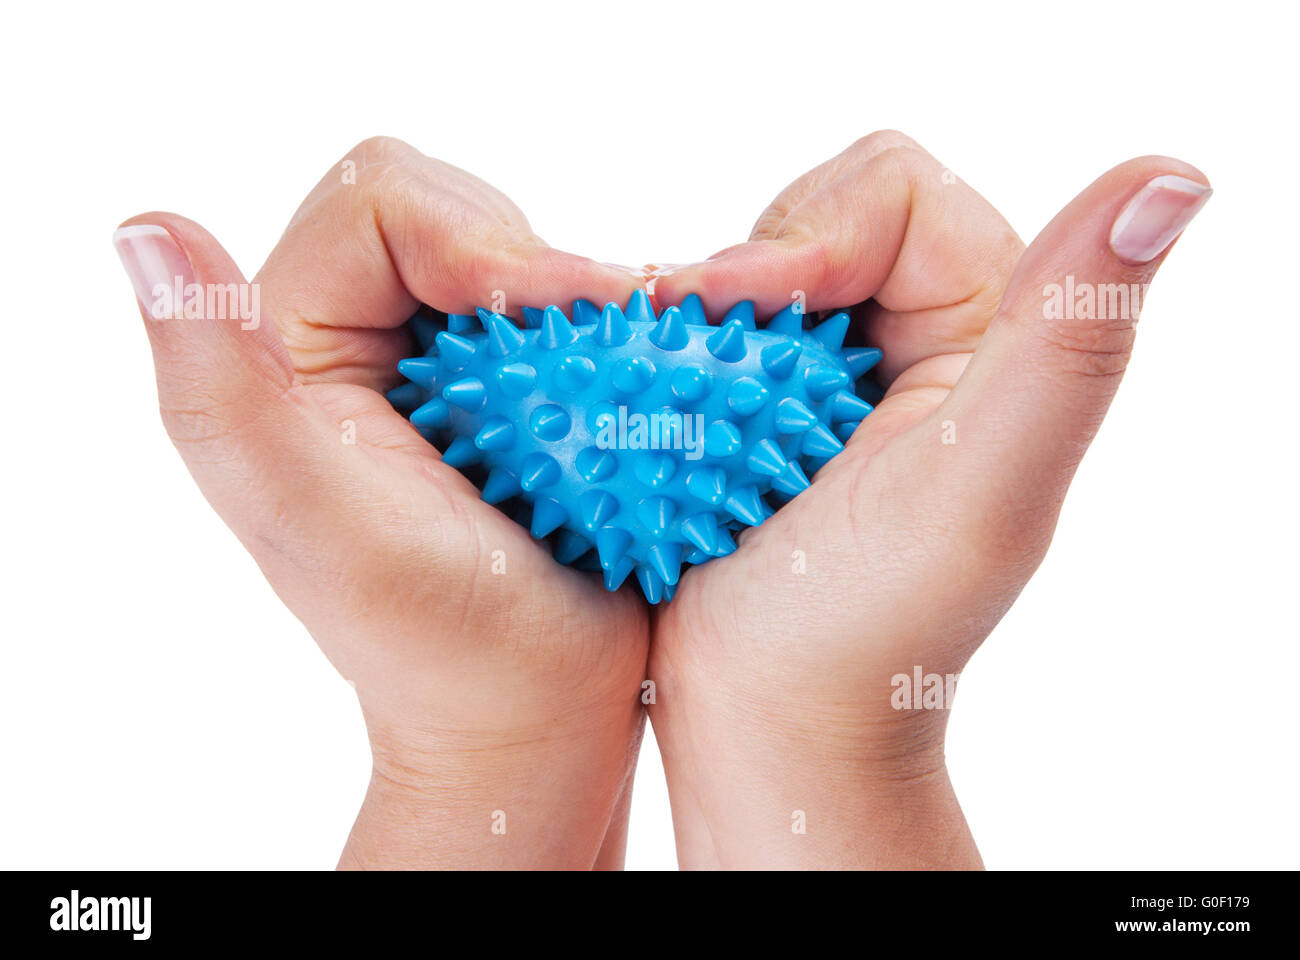 Woman hands with massage ball - Stock Image